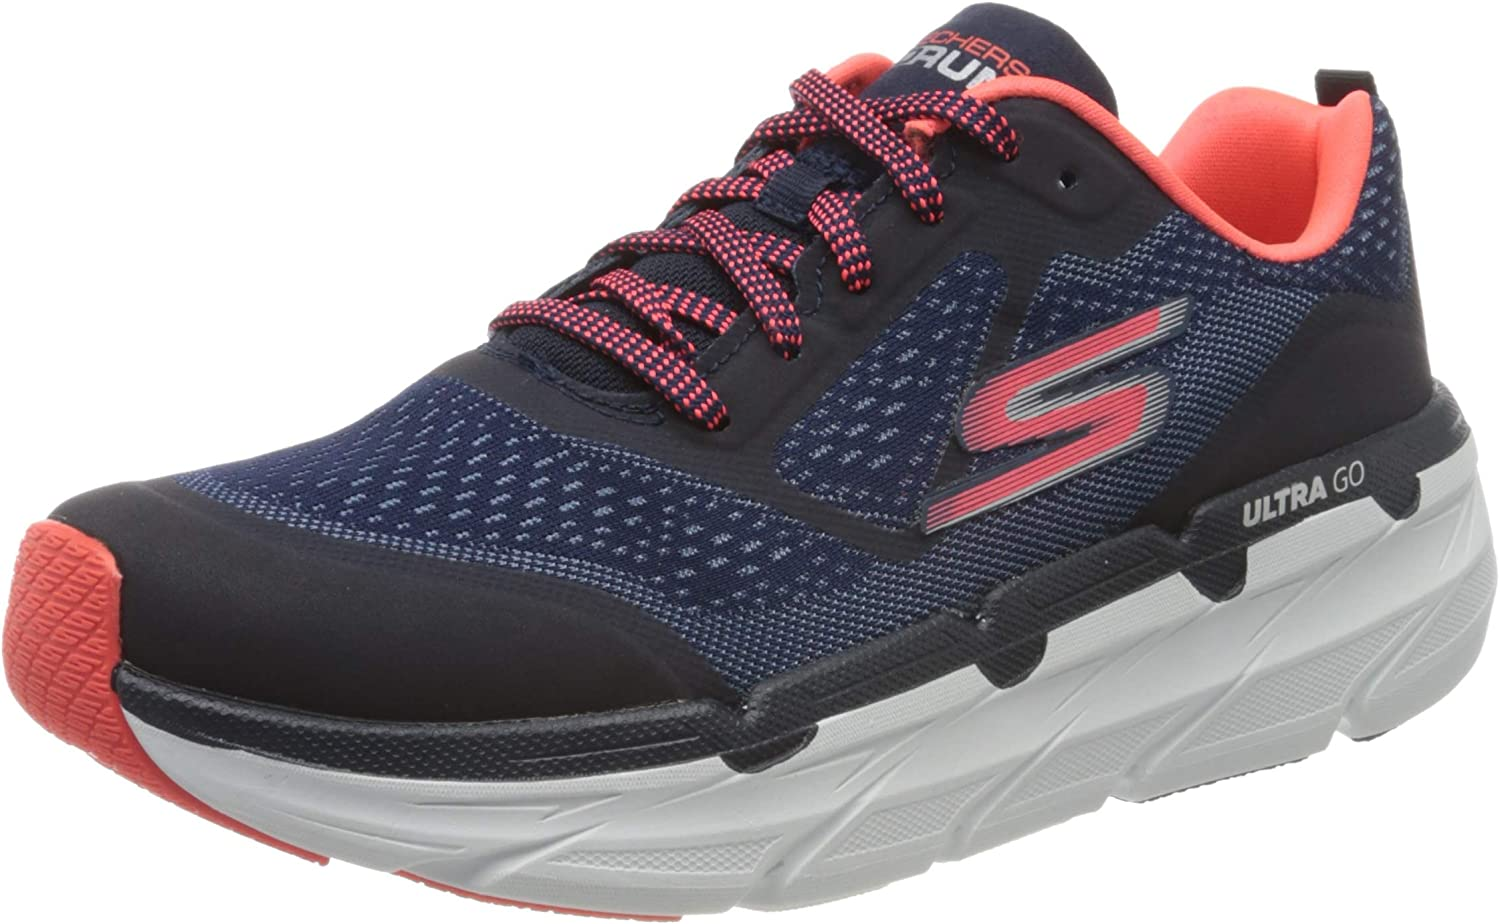 Skechers Women's Low-top Trainers Limited time for free shipping Max 70% OFF